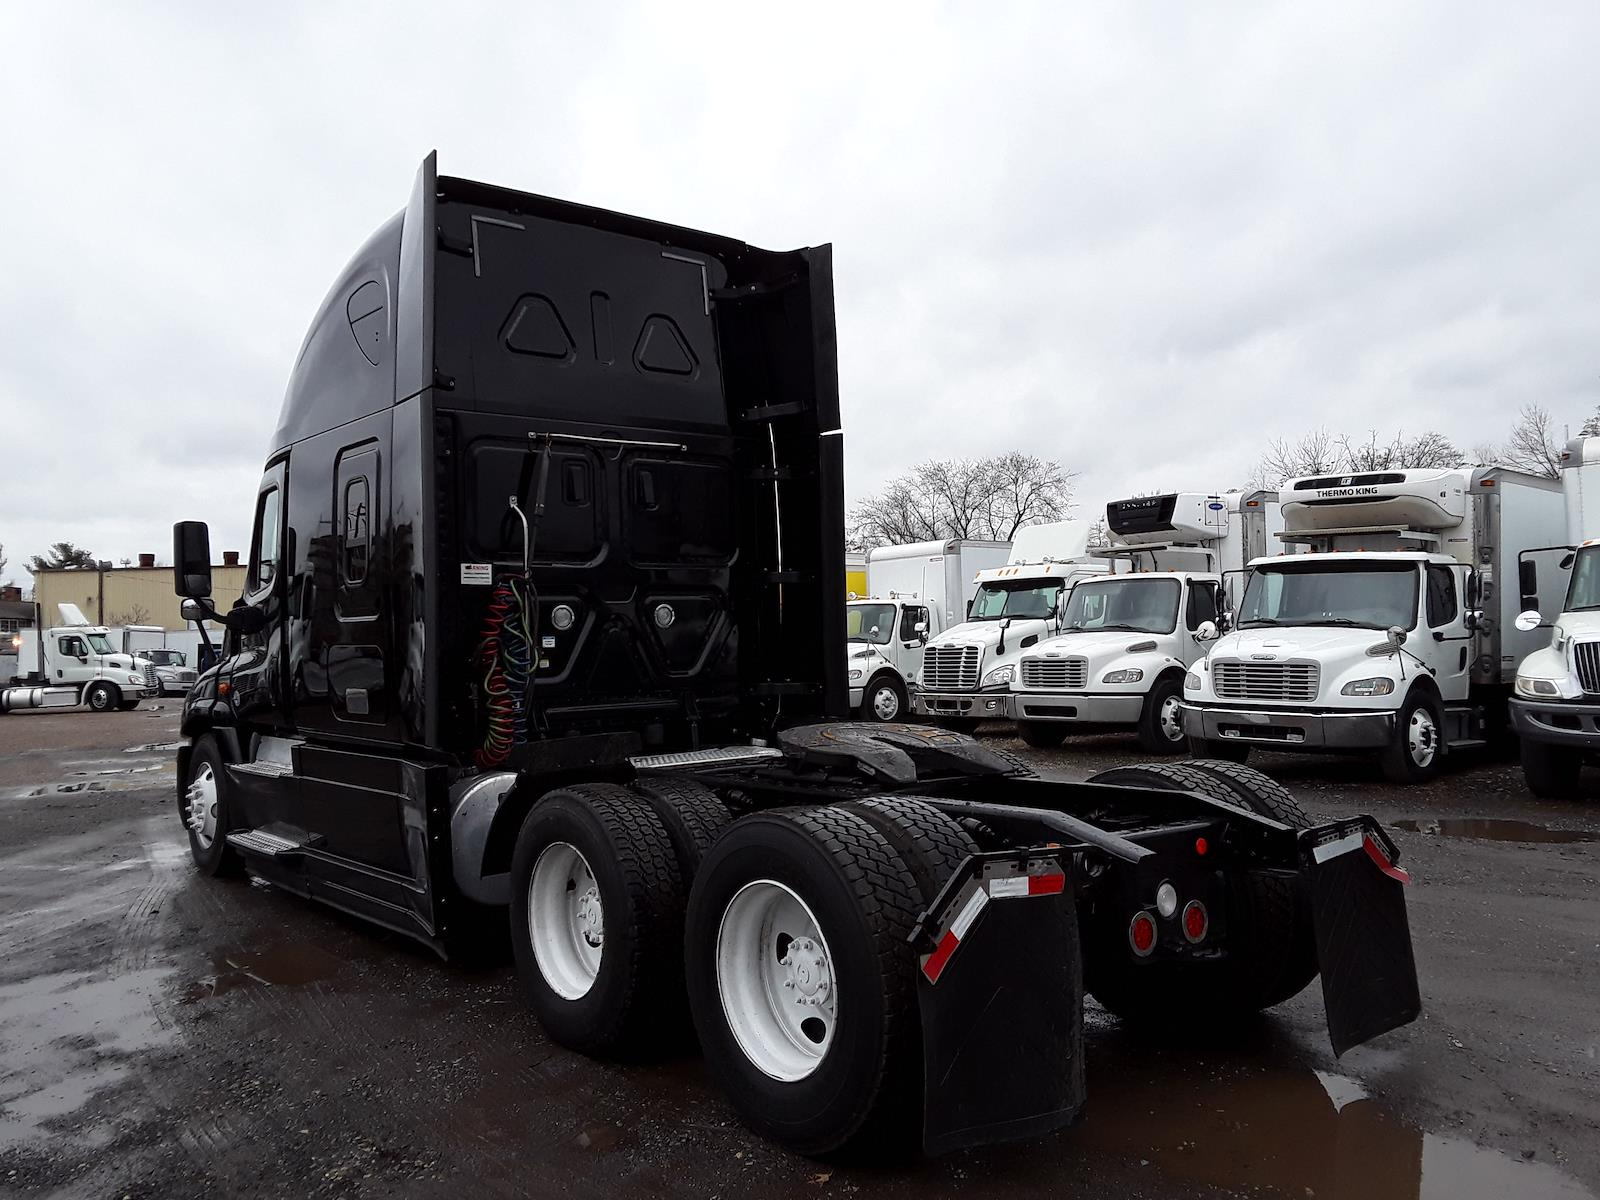 2018 Freightliner Cascadia 6x4, Tractor #682524 - photo 1